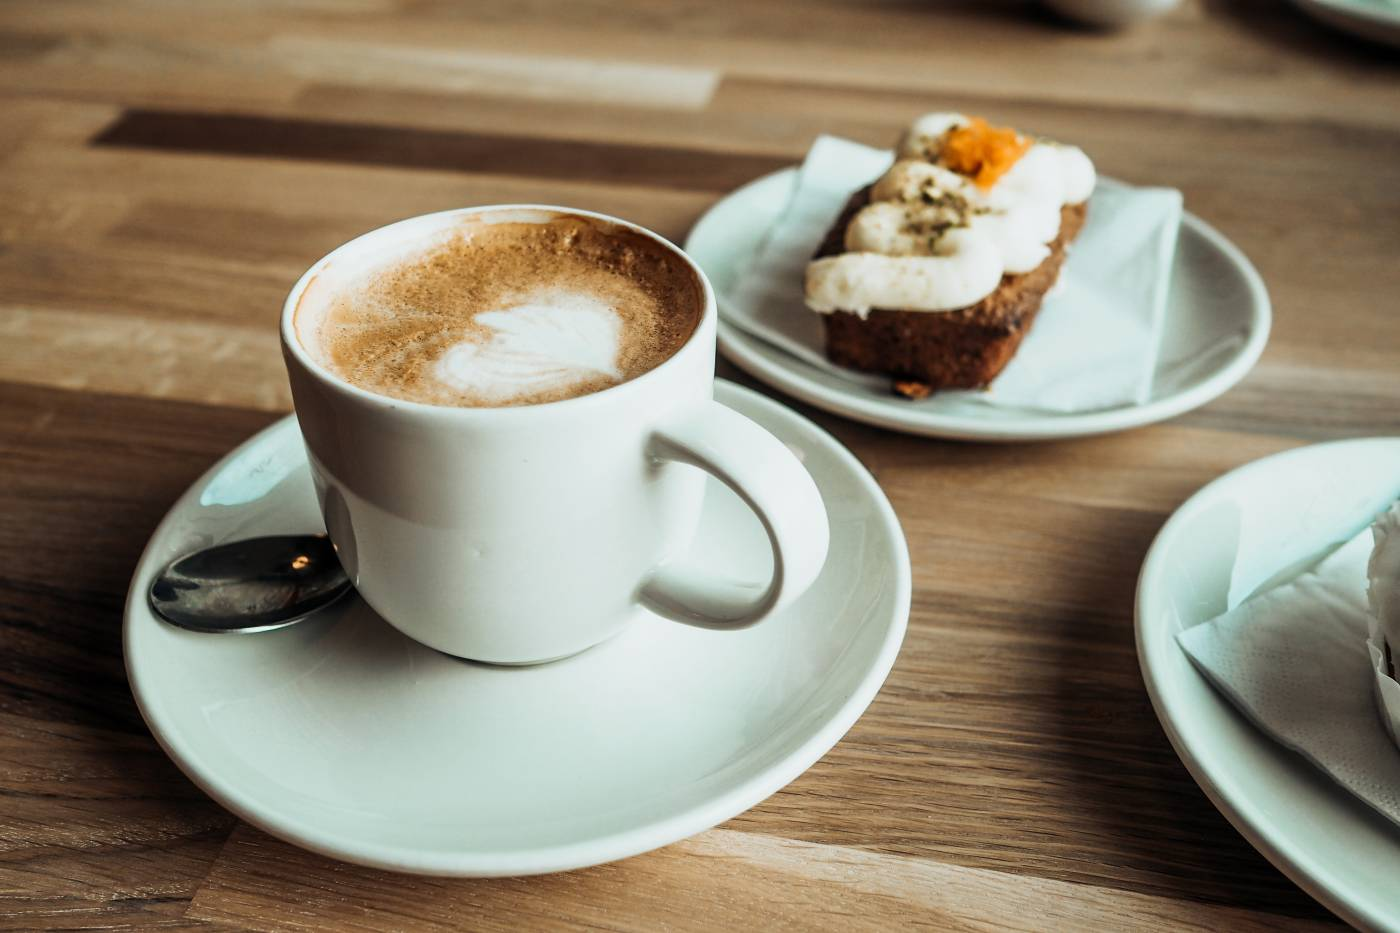 Flat White and Cake at MK Gallery Cafe